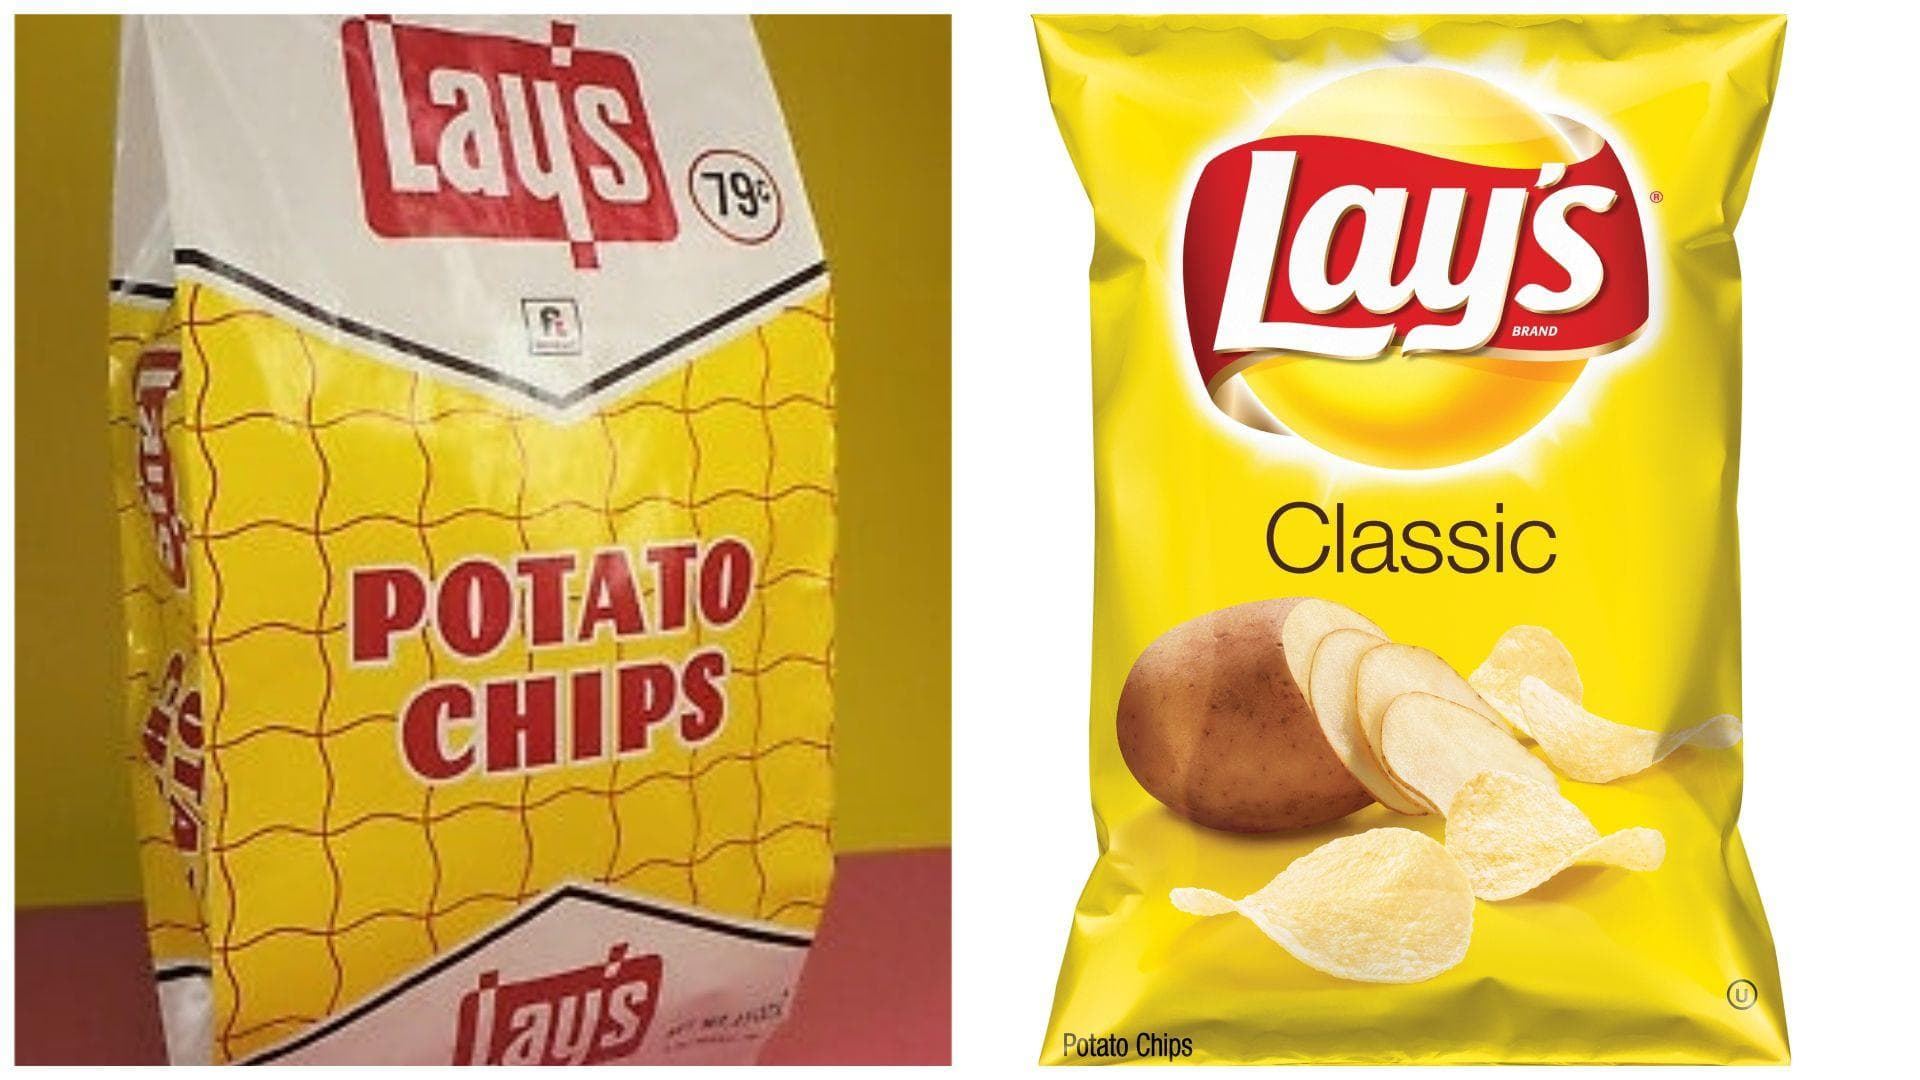 Lay's, 1967 Vs. 2019 on Random Potato Chip Bags Have Changed Over Tim